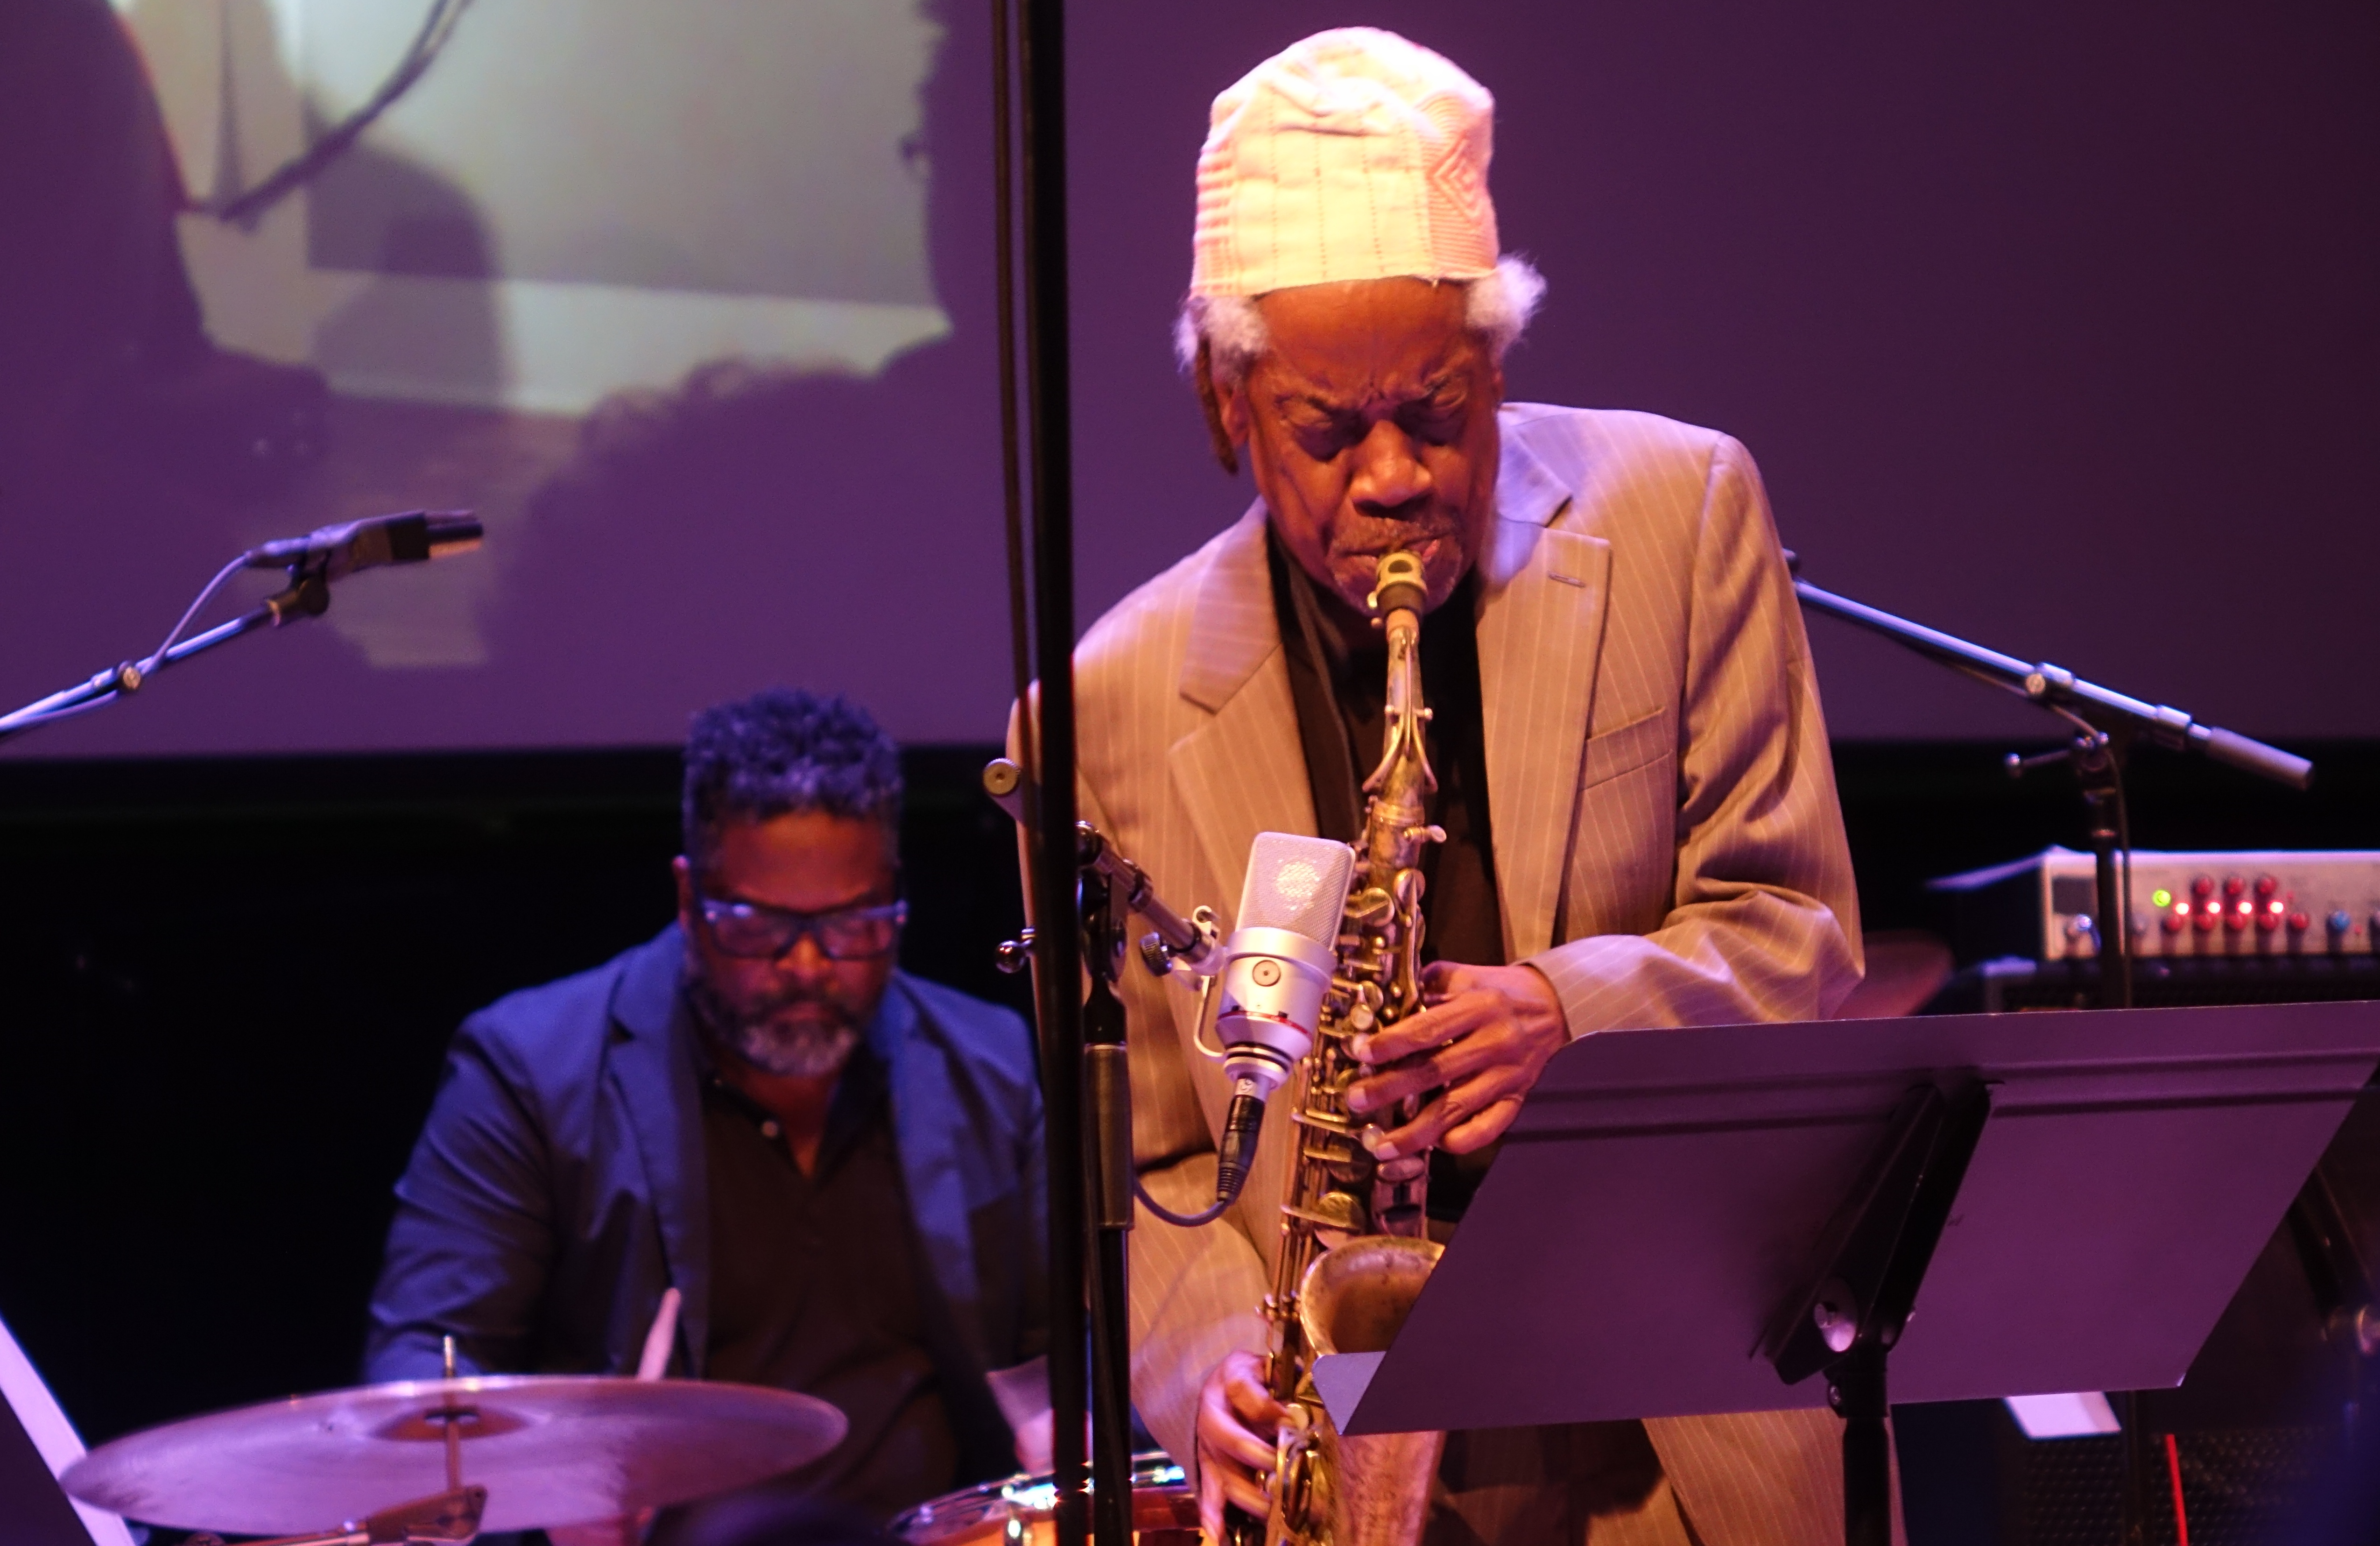 Gerald Cleaver and Jemeel Moondoc at the Vision Festival in Roulette, Brooklyn in June 2019